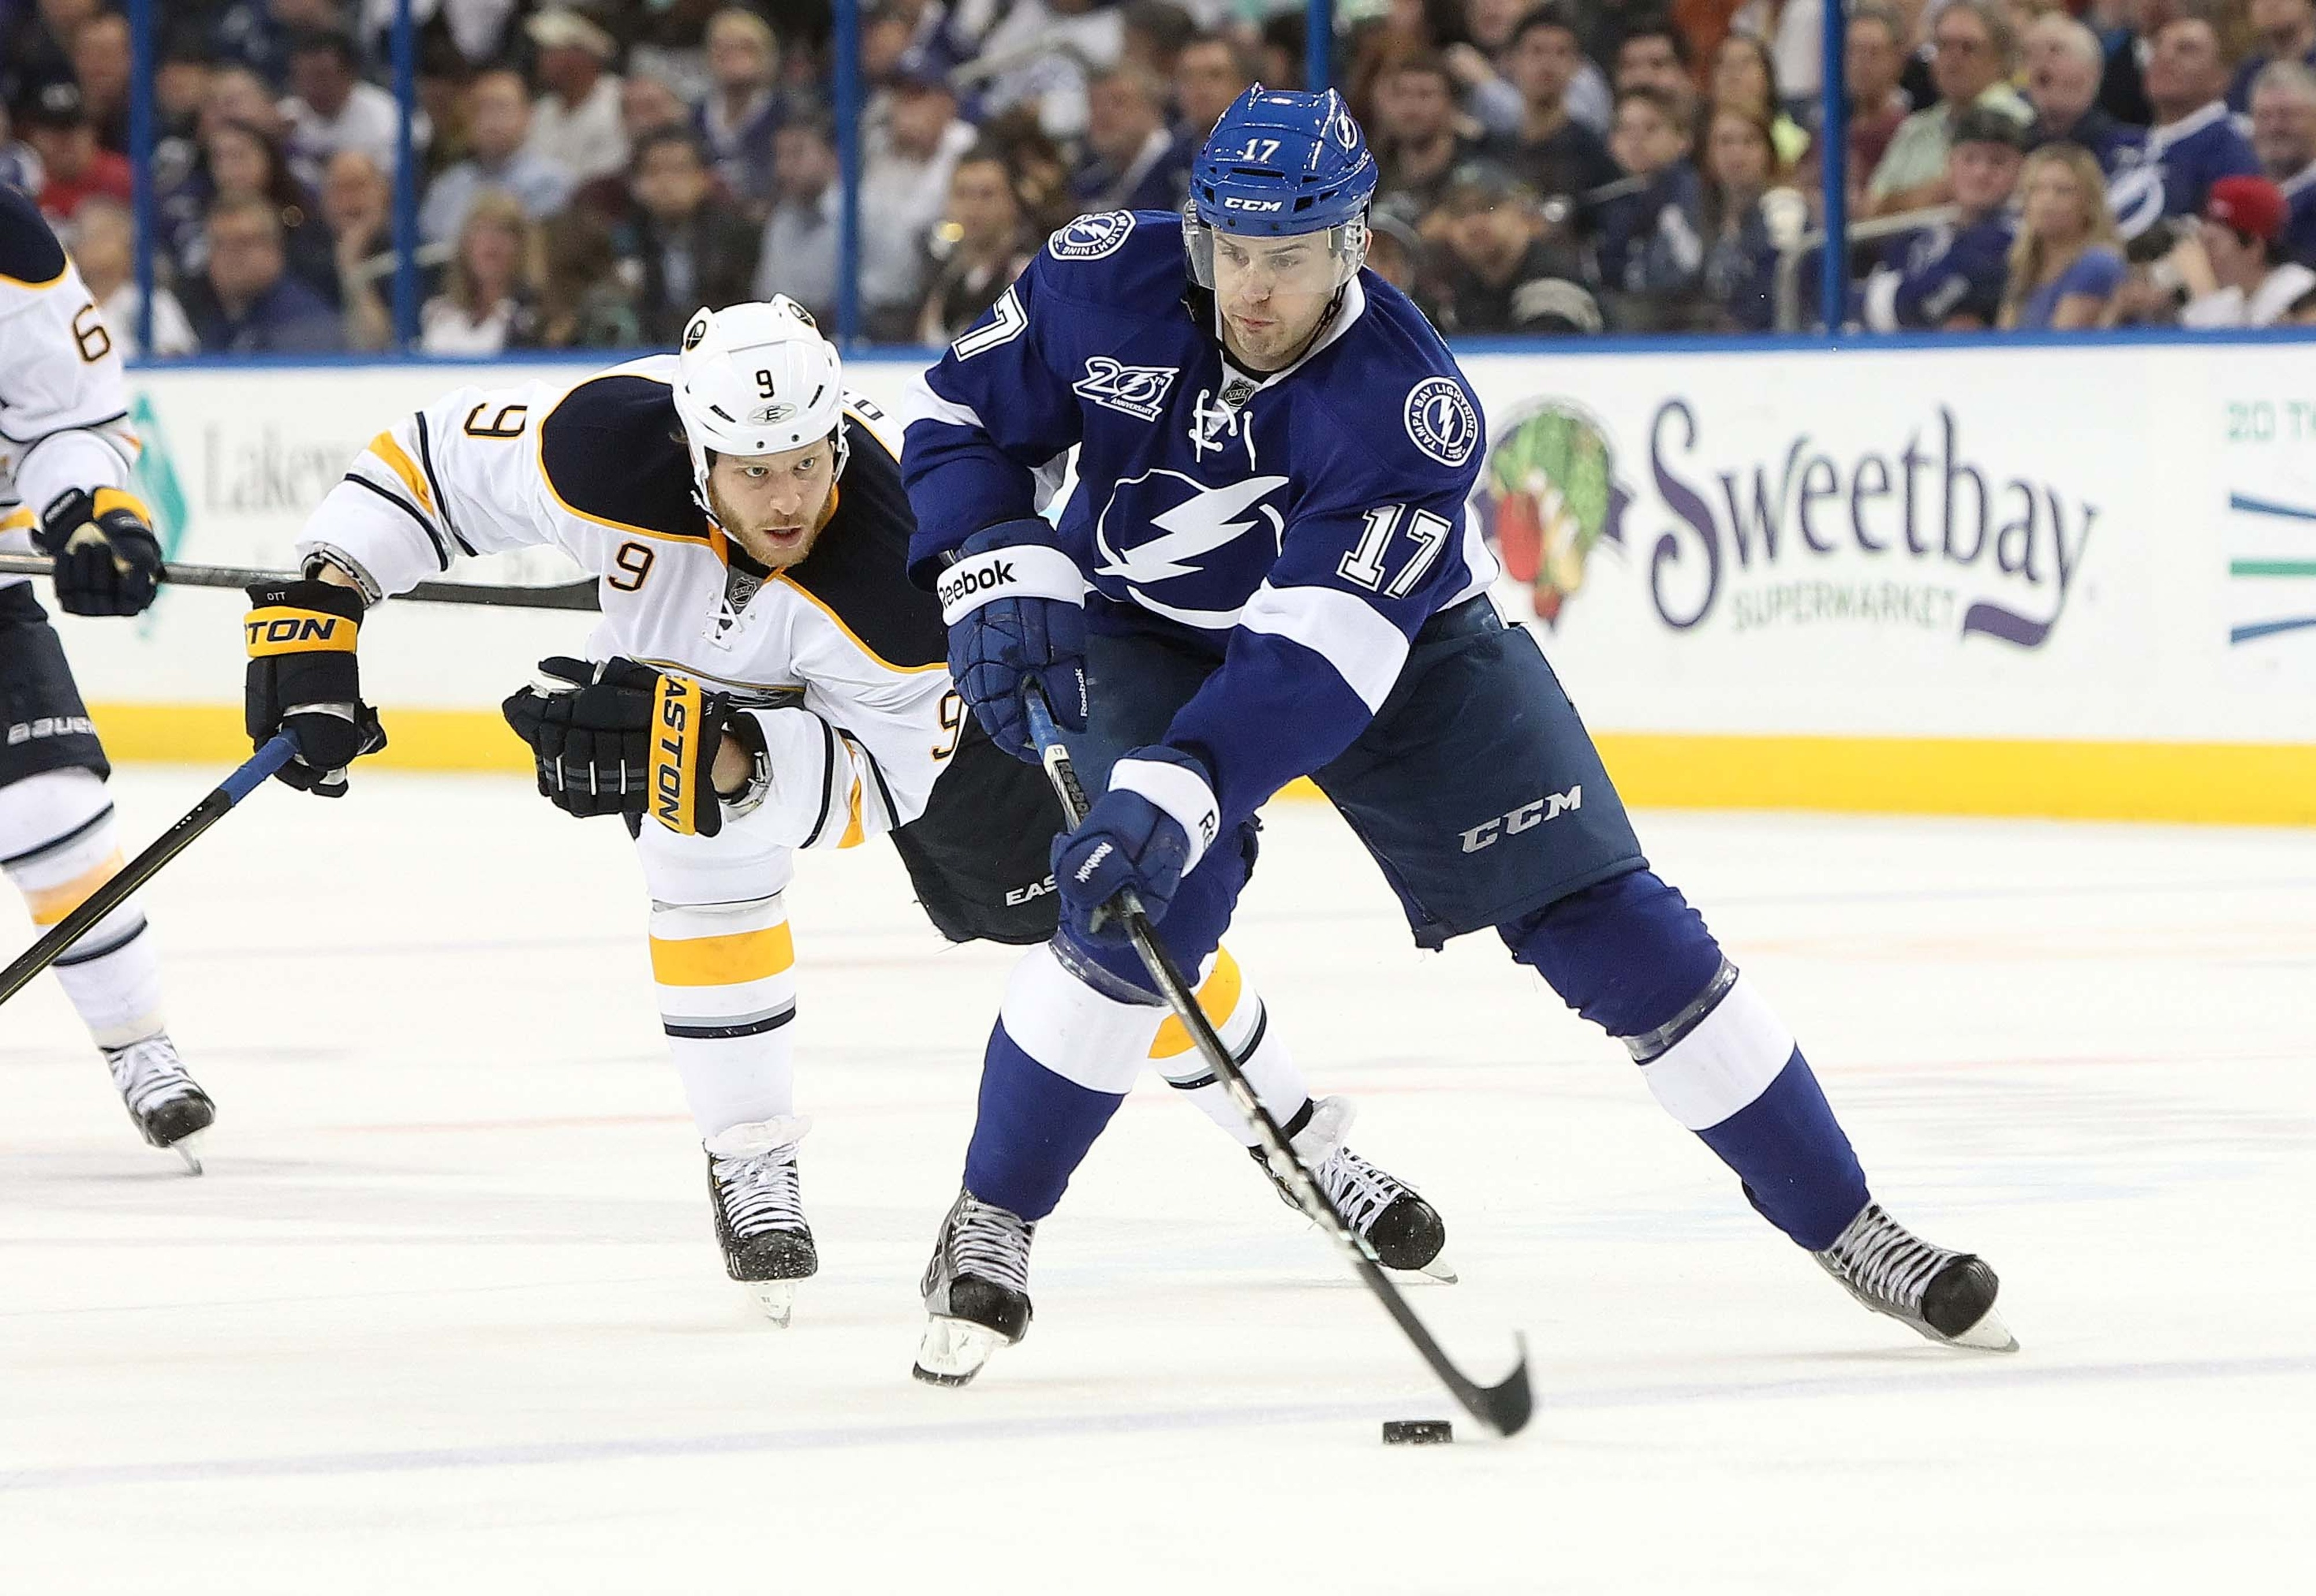 Alex Killorn is an option for the Tampa Bay Lightning to assume the 2nd line center role.